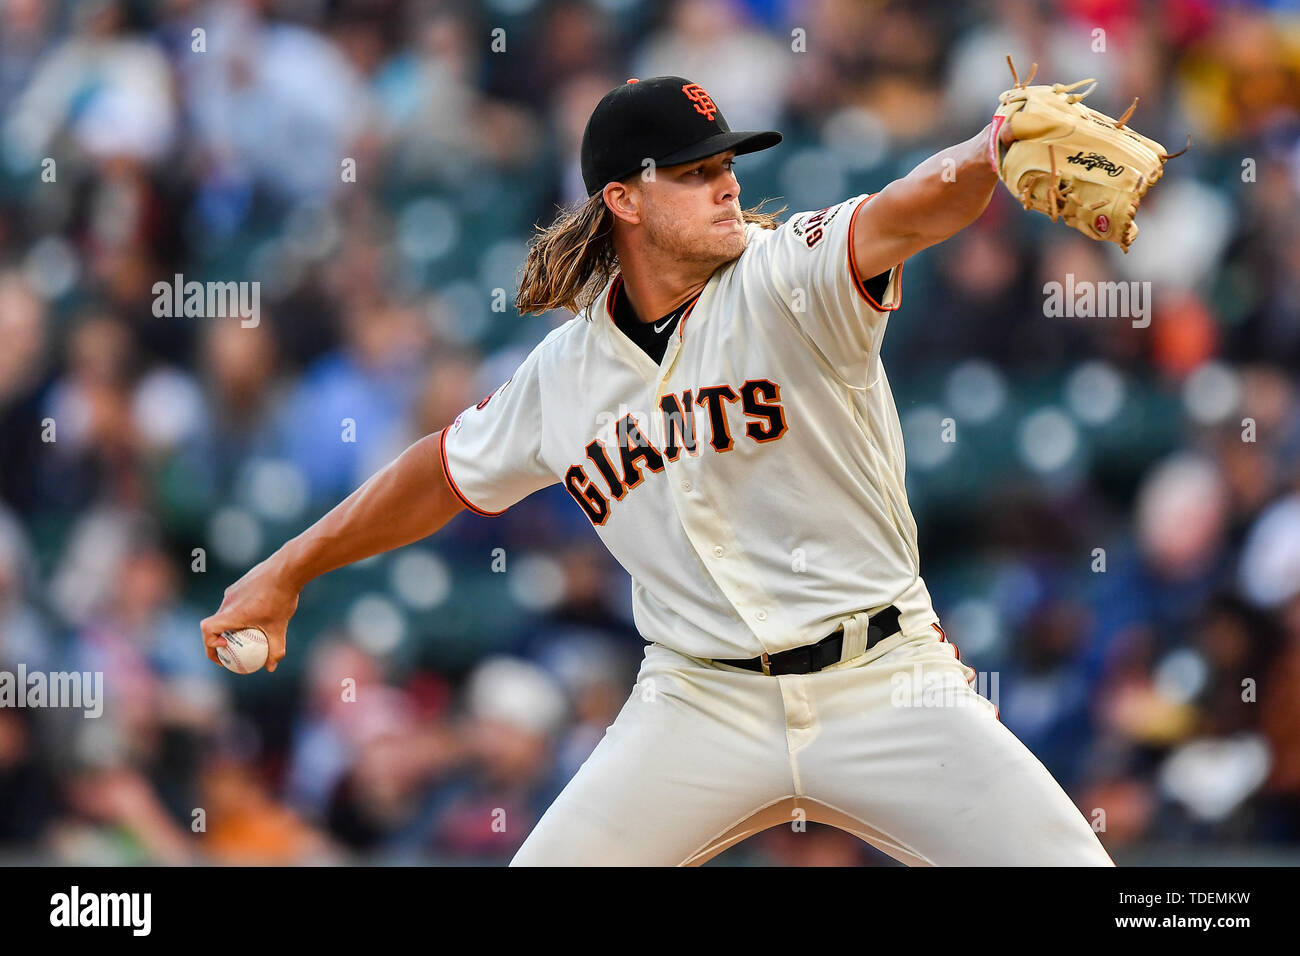 San Francisco, California, USA. 12th June, 2019. San Francisco Giants starting pitcher Shaun Anderson (64) in action during the MLB game between the San Diego Padres and the San Francisco Giants at Oracle Park in San Francisco, California. Chris Brown/CSM/Alamy Live News - Stock Image